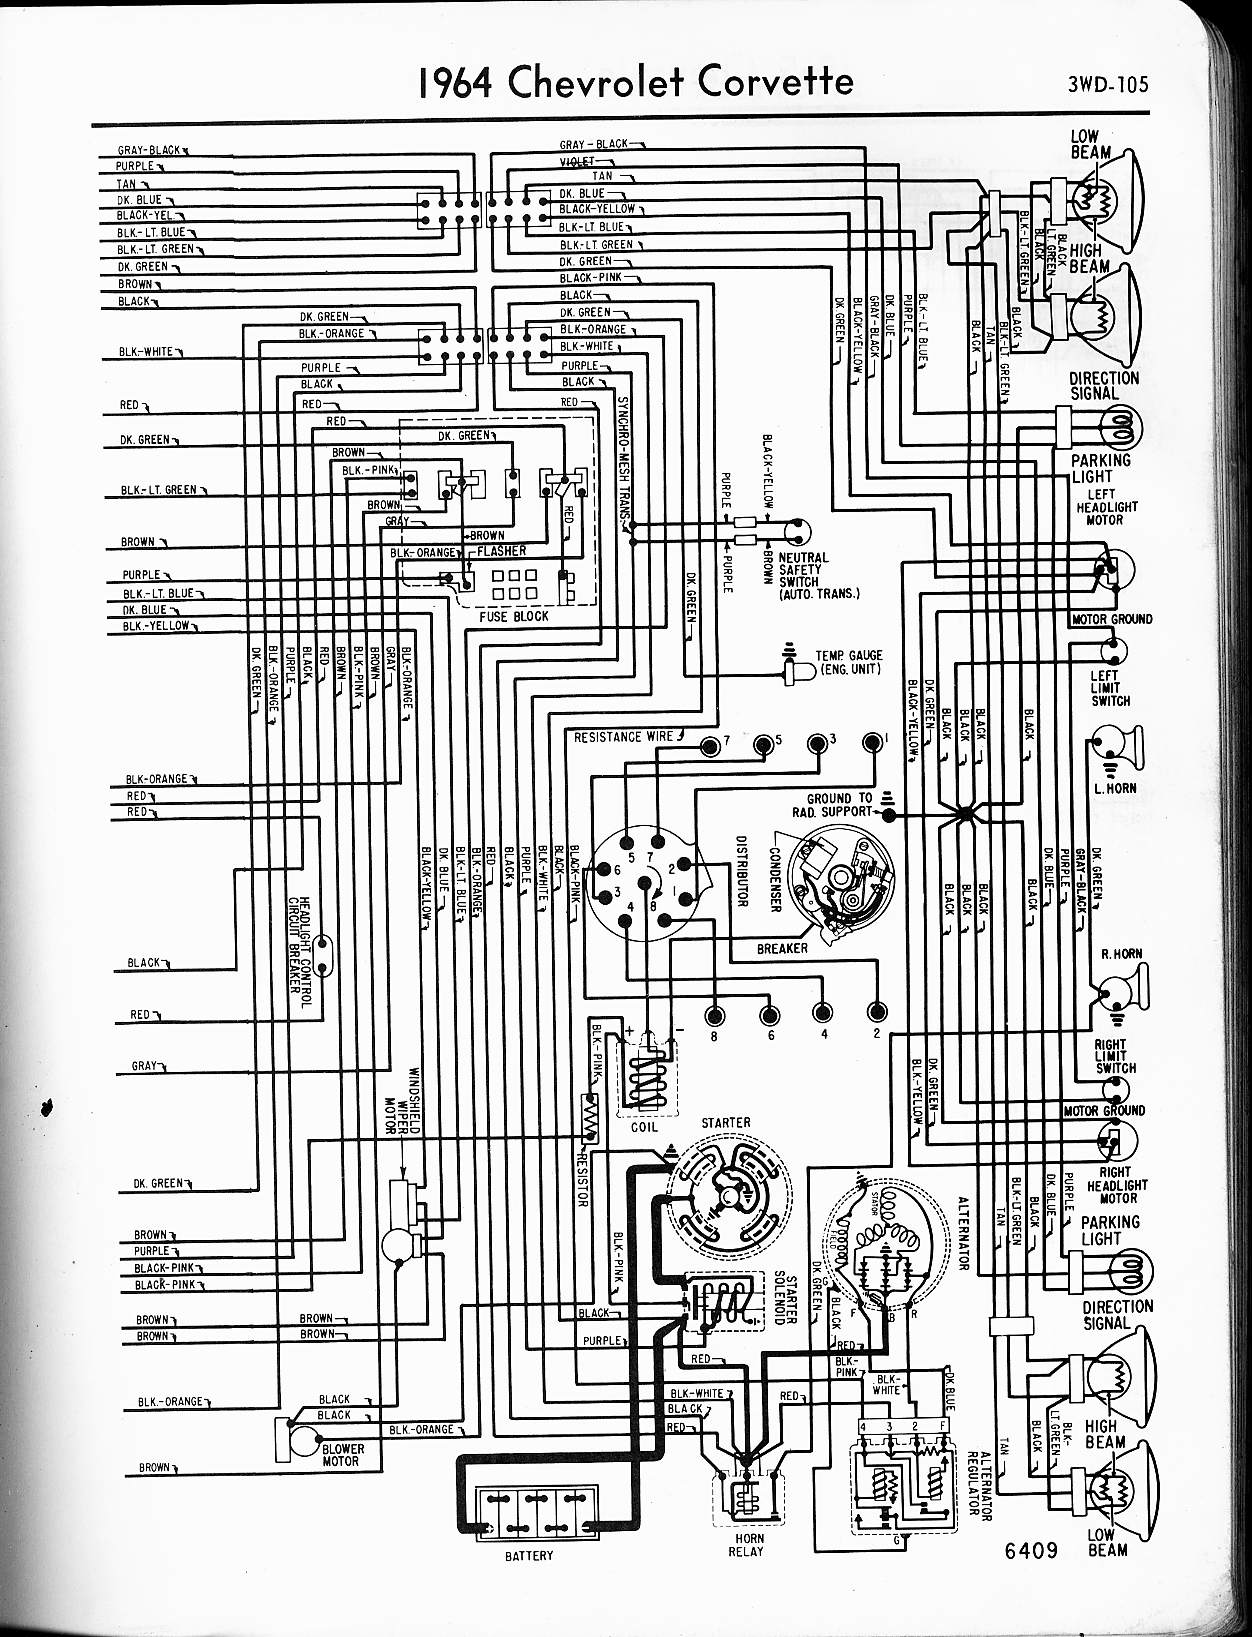 1965 Chevy Wiring Light Switch Schematic Diagram A 56 Headlight 65 Impala Enthusiast Diagrams U2022 Rh Rasalibre Co